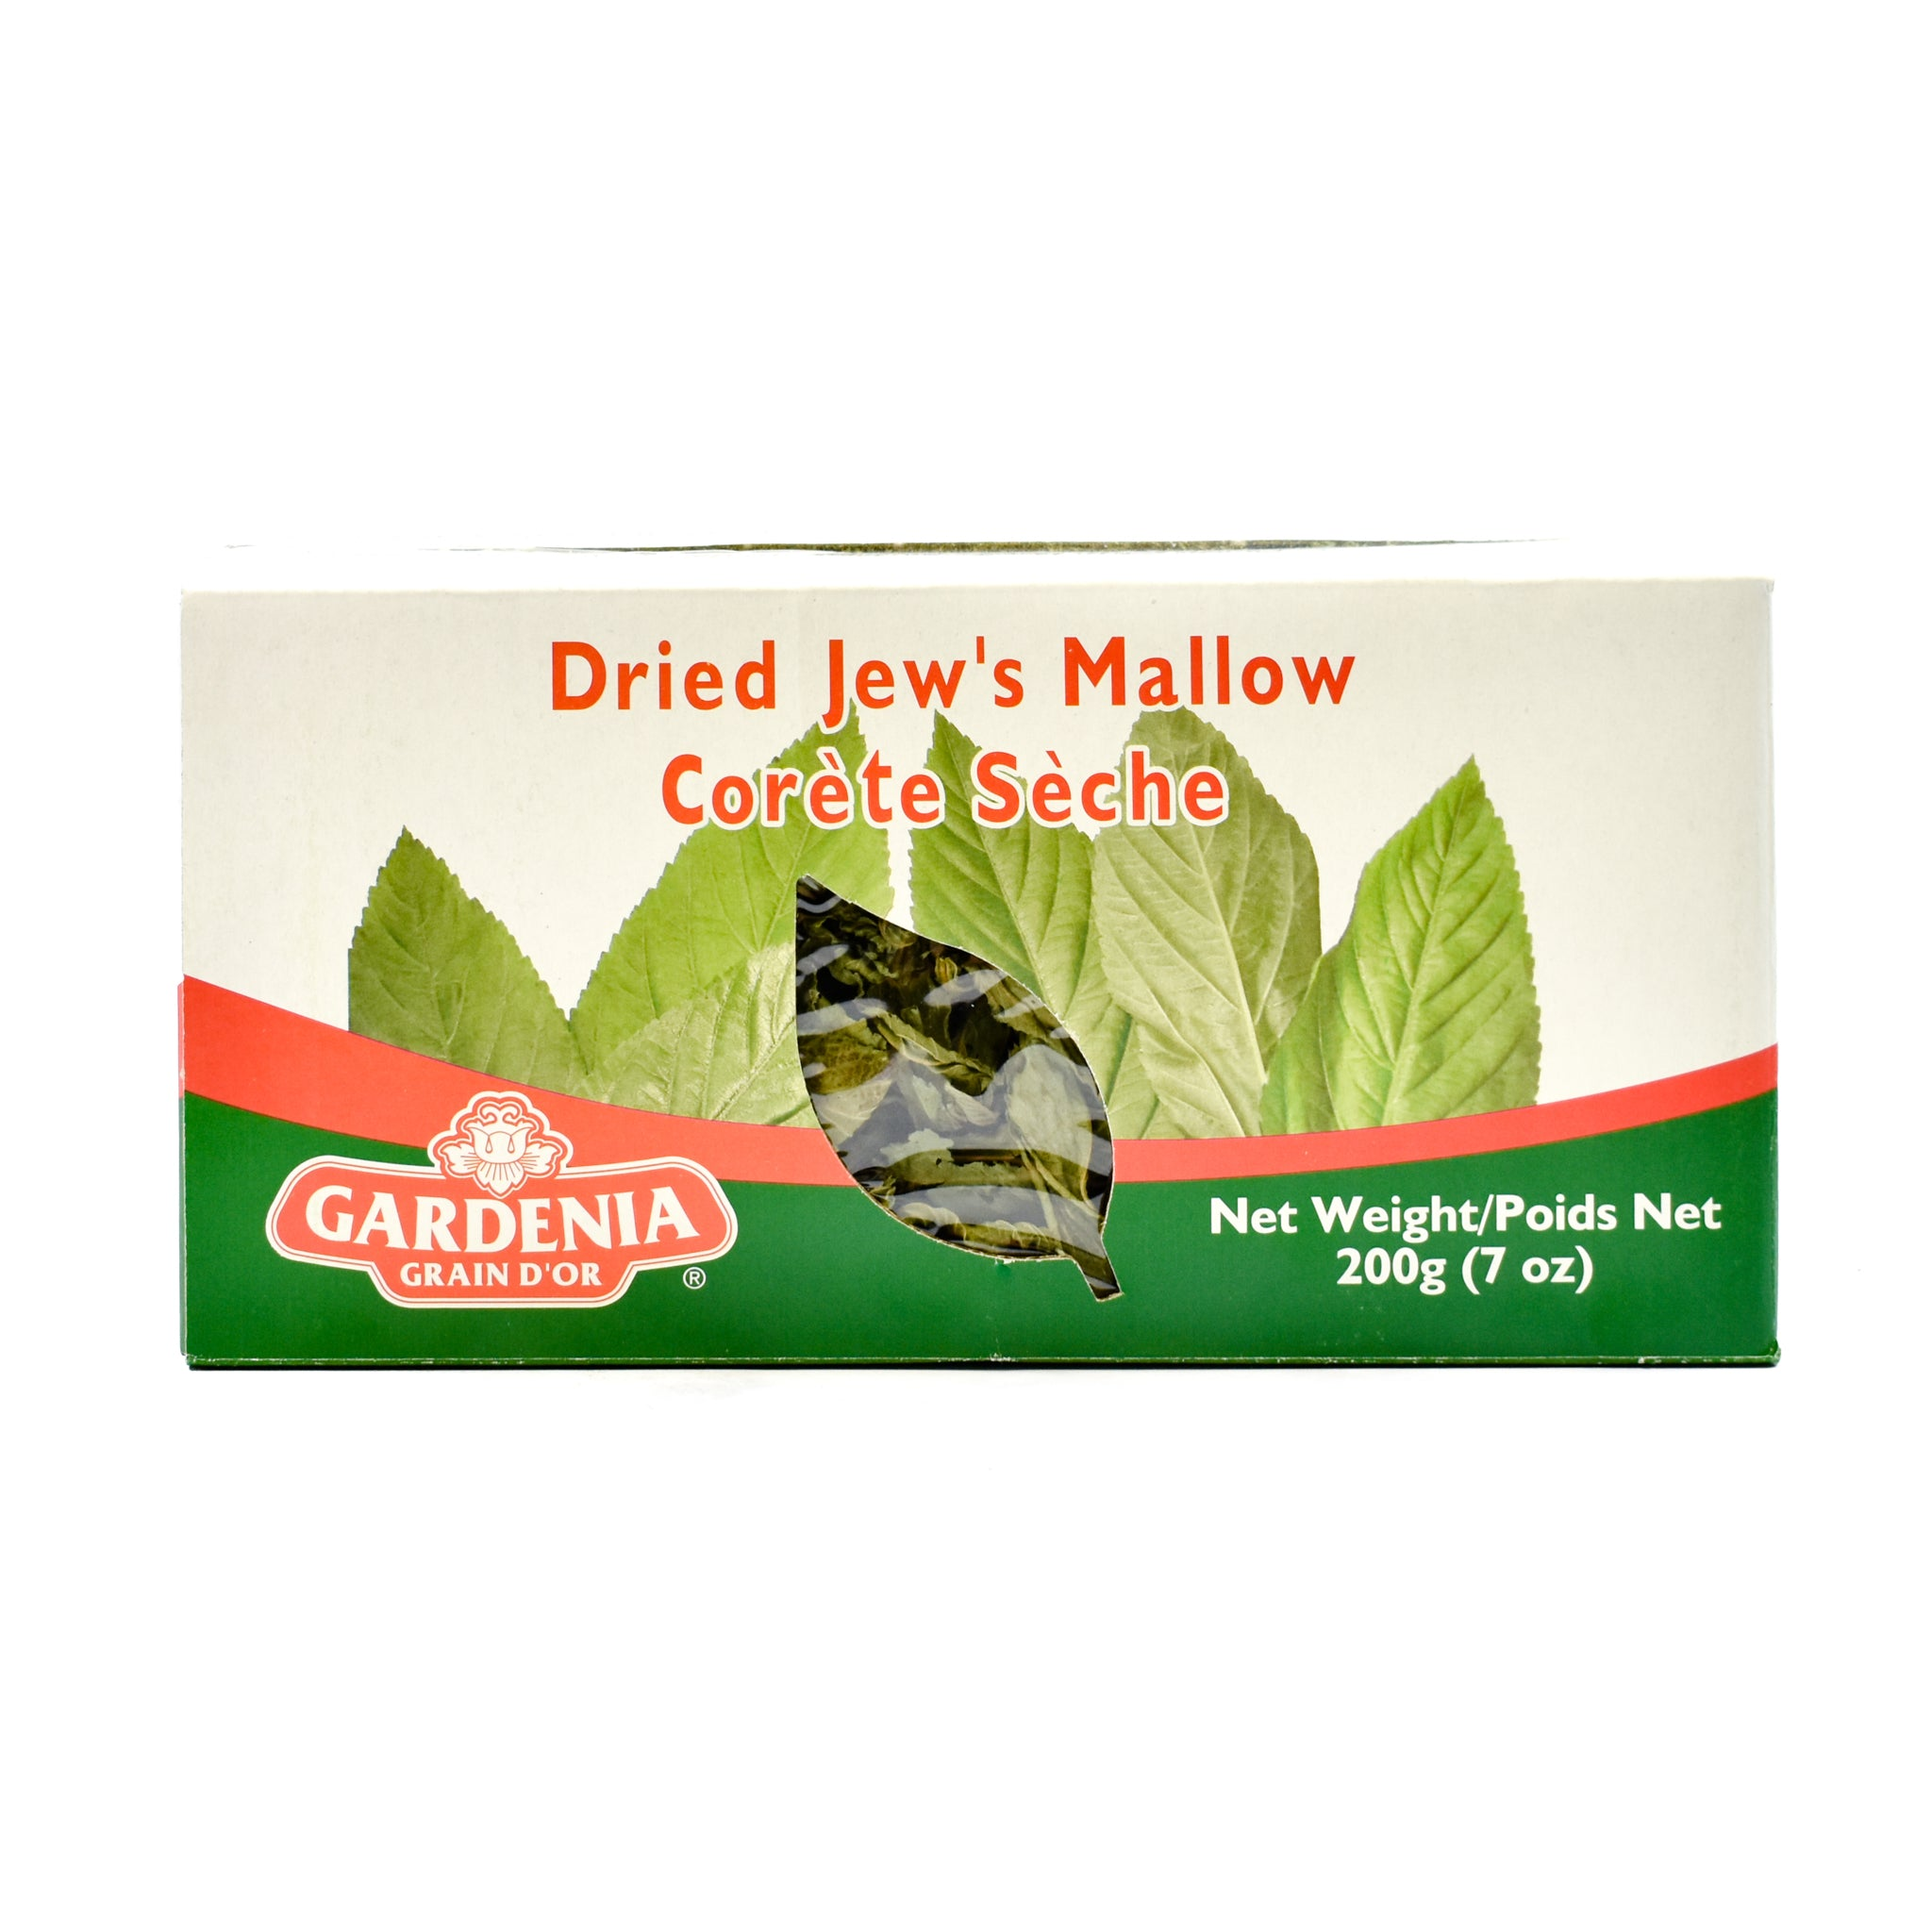 Gardenia Dried Molokhia Leaves 200g Ingredients Pickled & Preserved Vegetables Middle Eastern Food